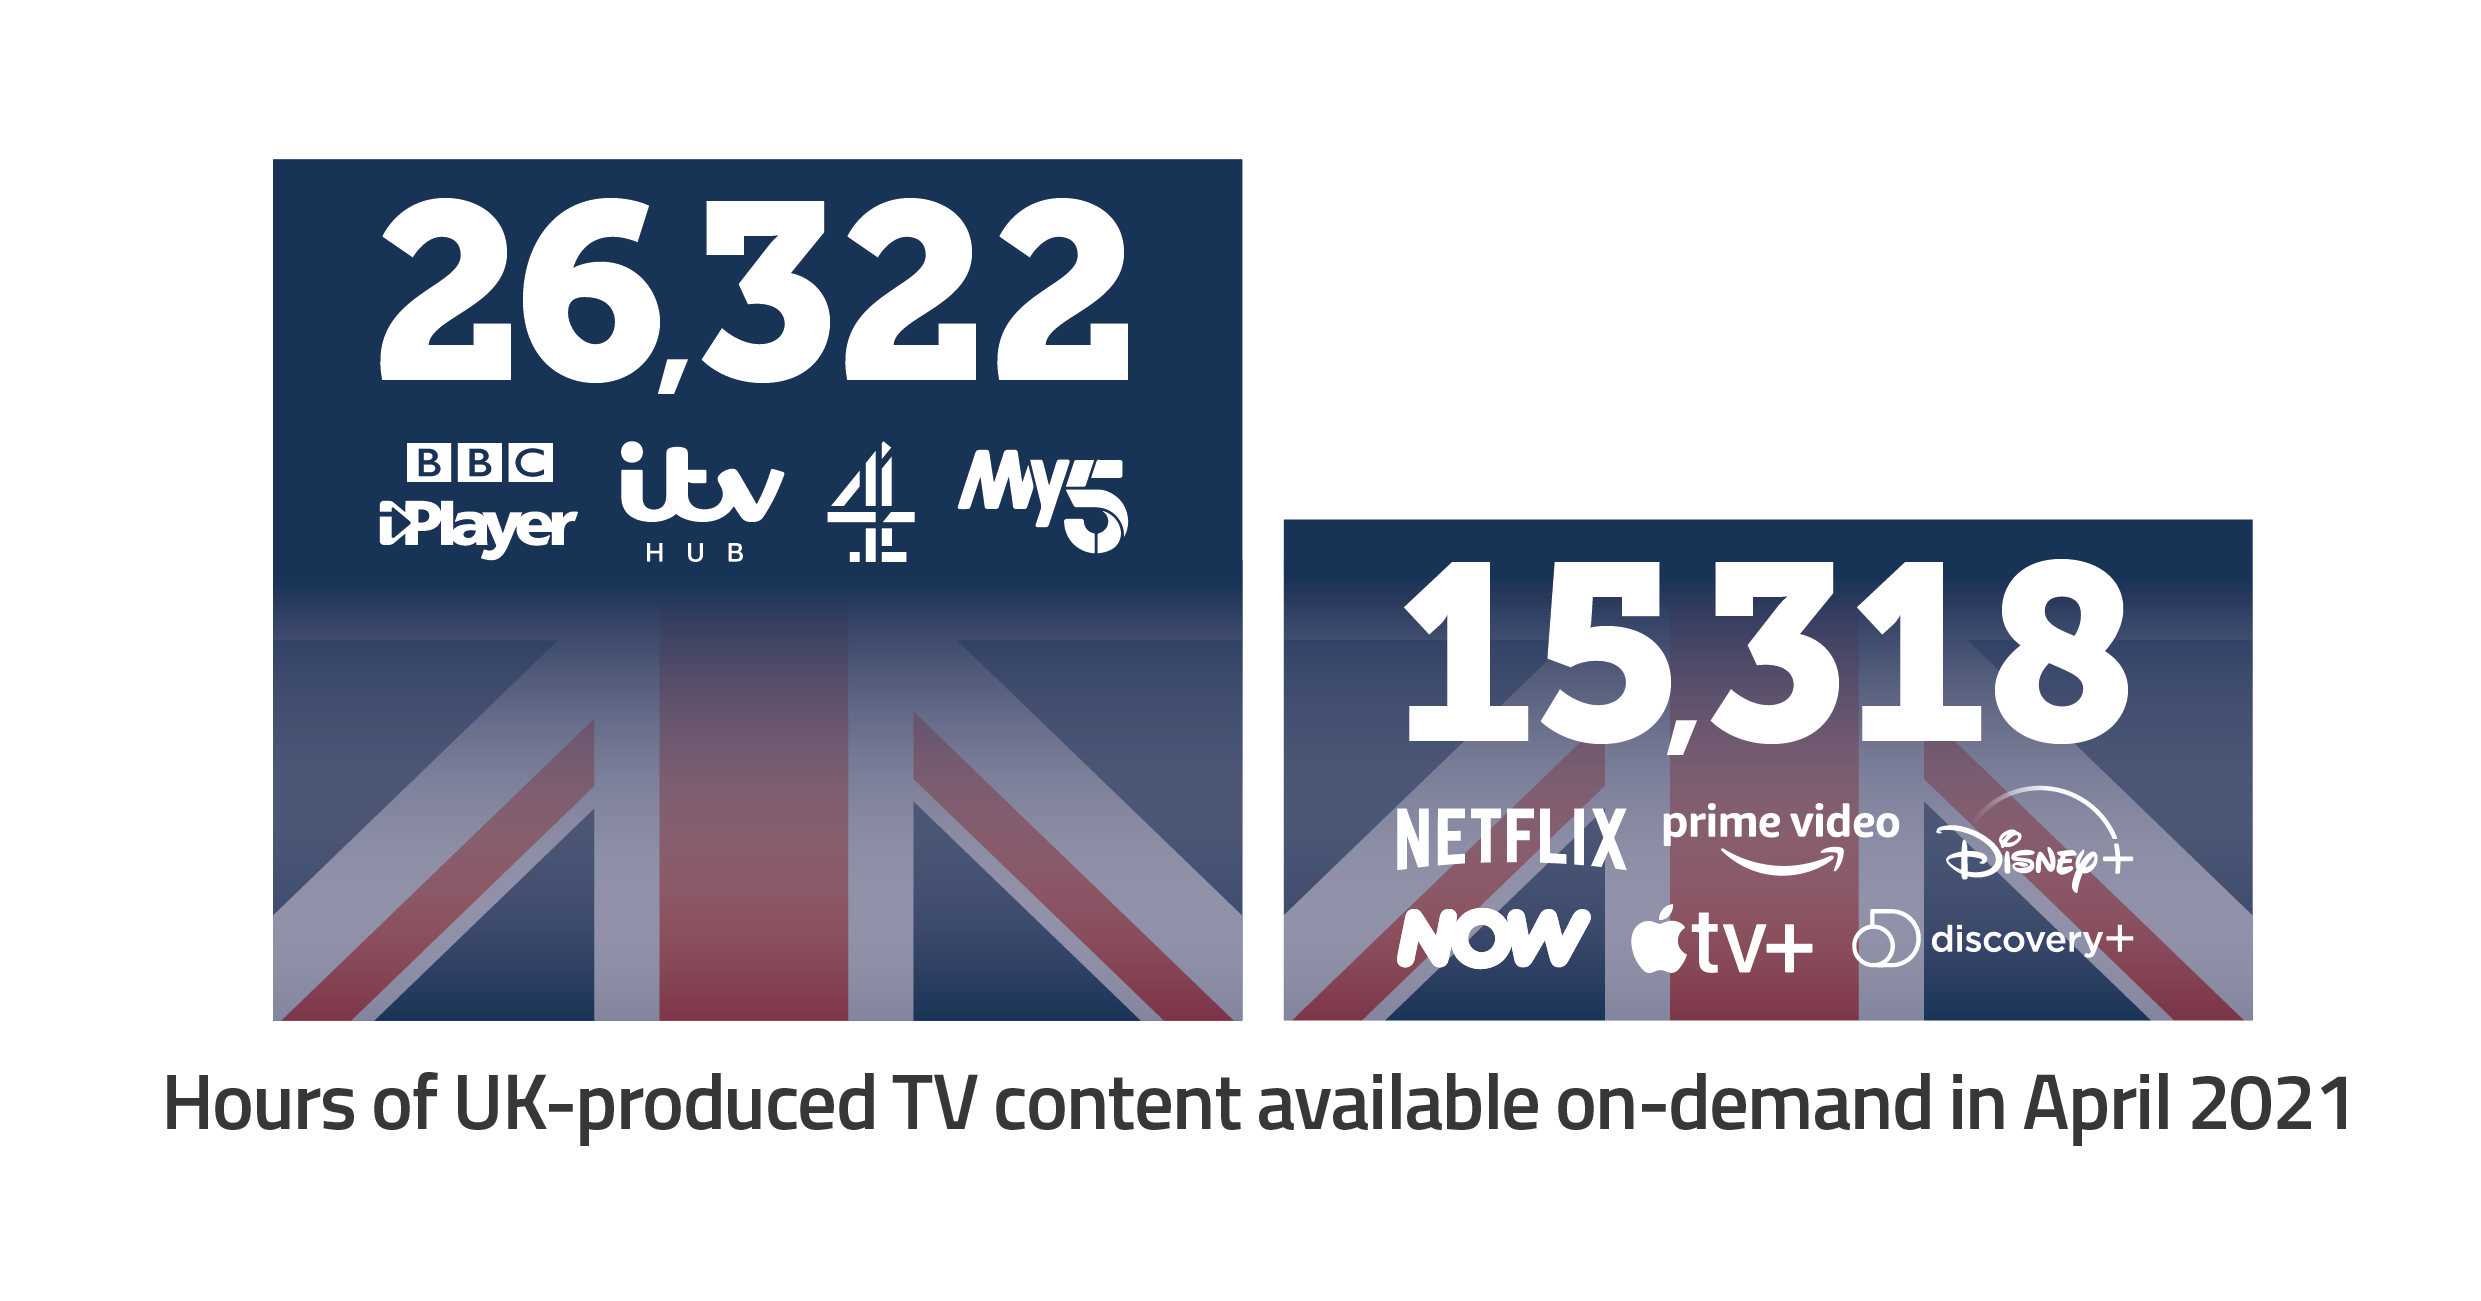 Hours of UK-produced TV content available on-demand in April 2021